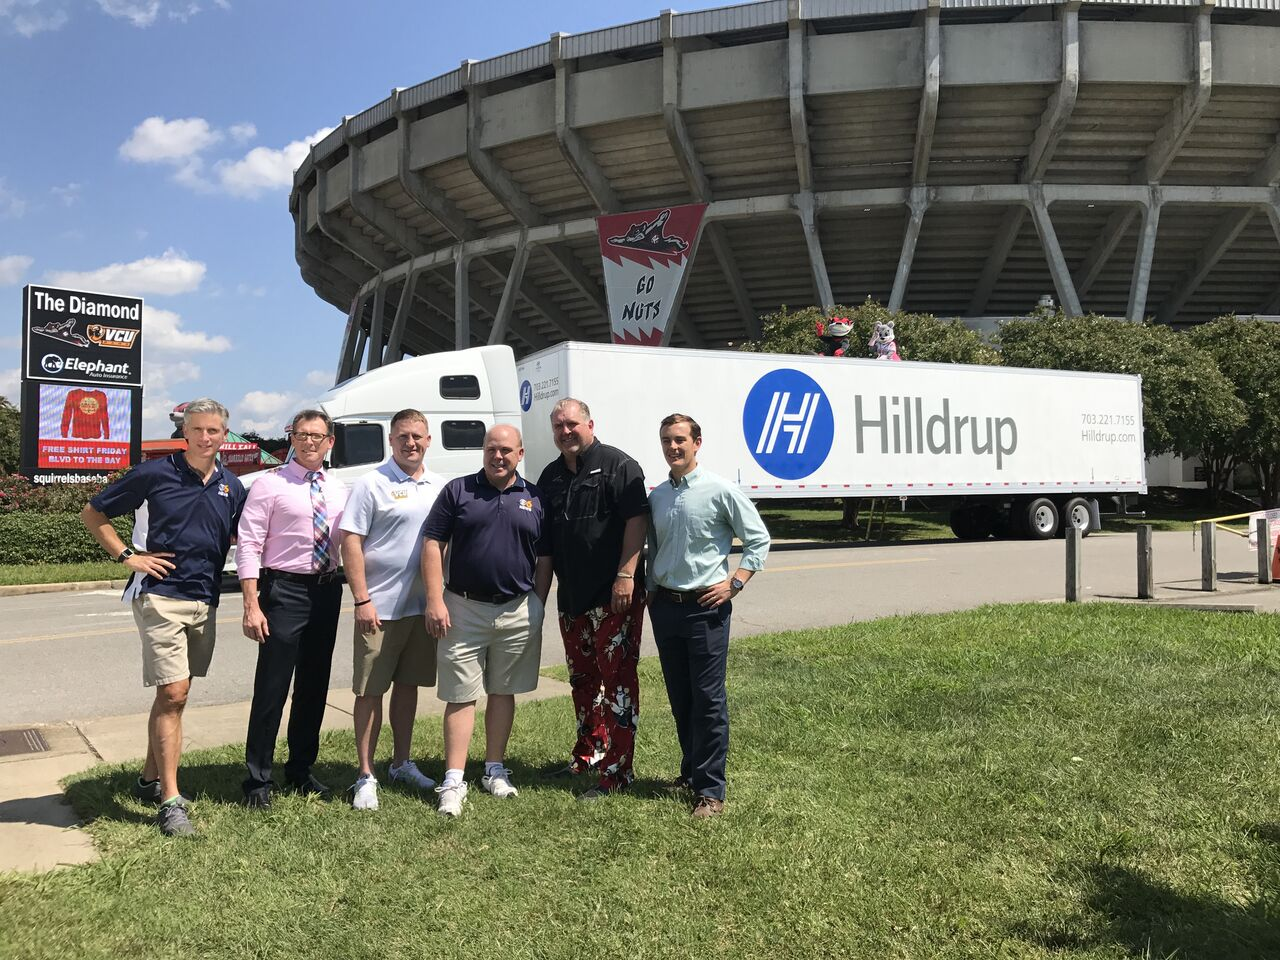 Hilldrup Truck outside of stadium